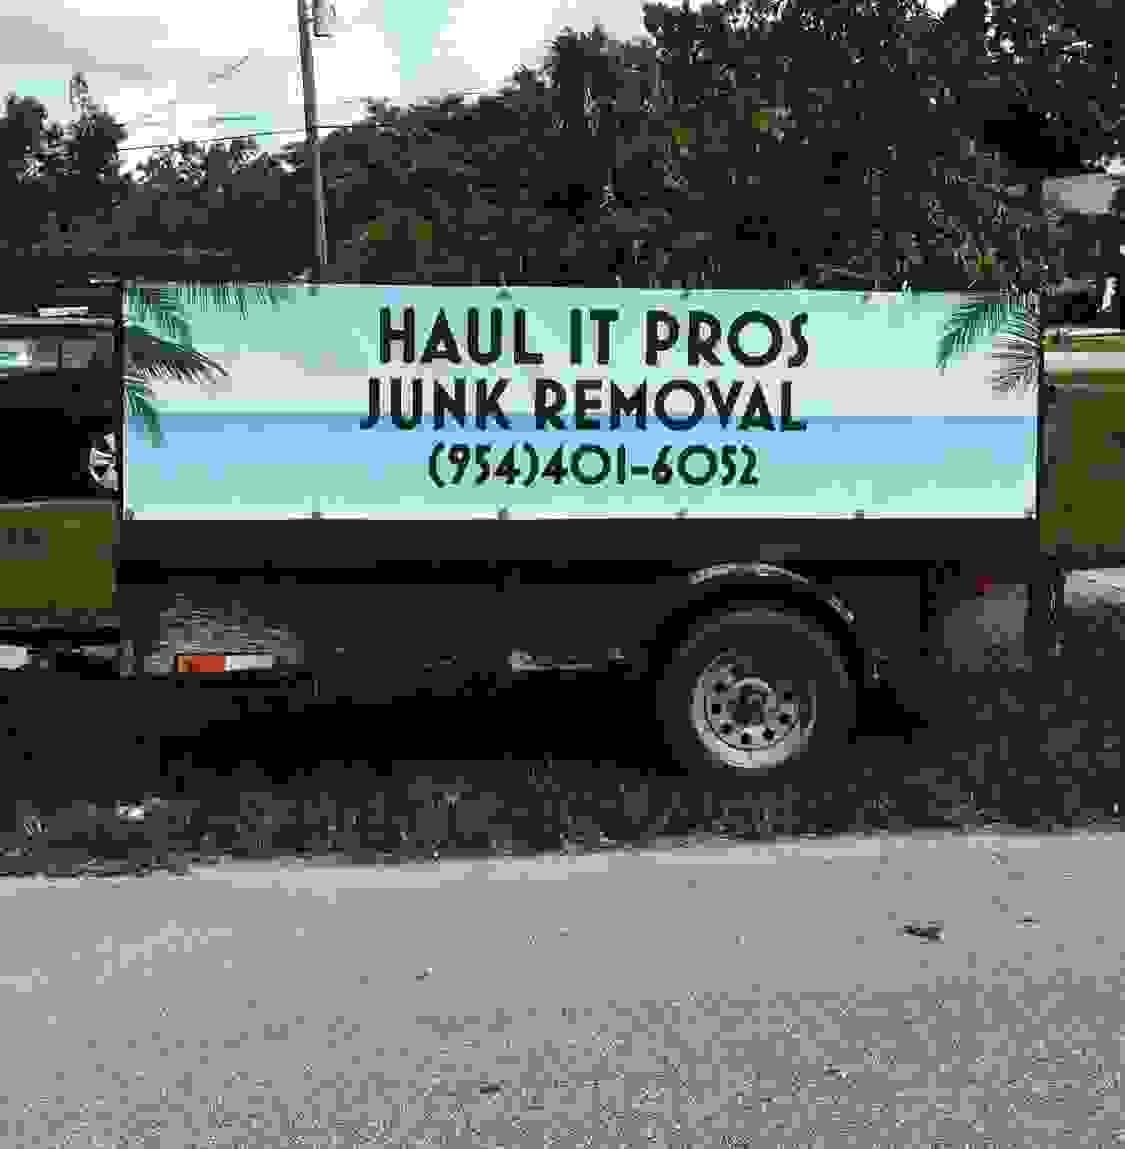 Trailer for residential junk or bulk removal. All types of junk get hauled for low cost and gets dis